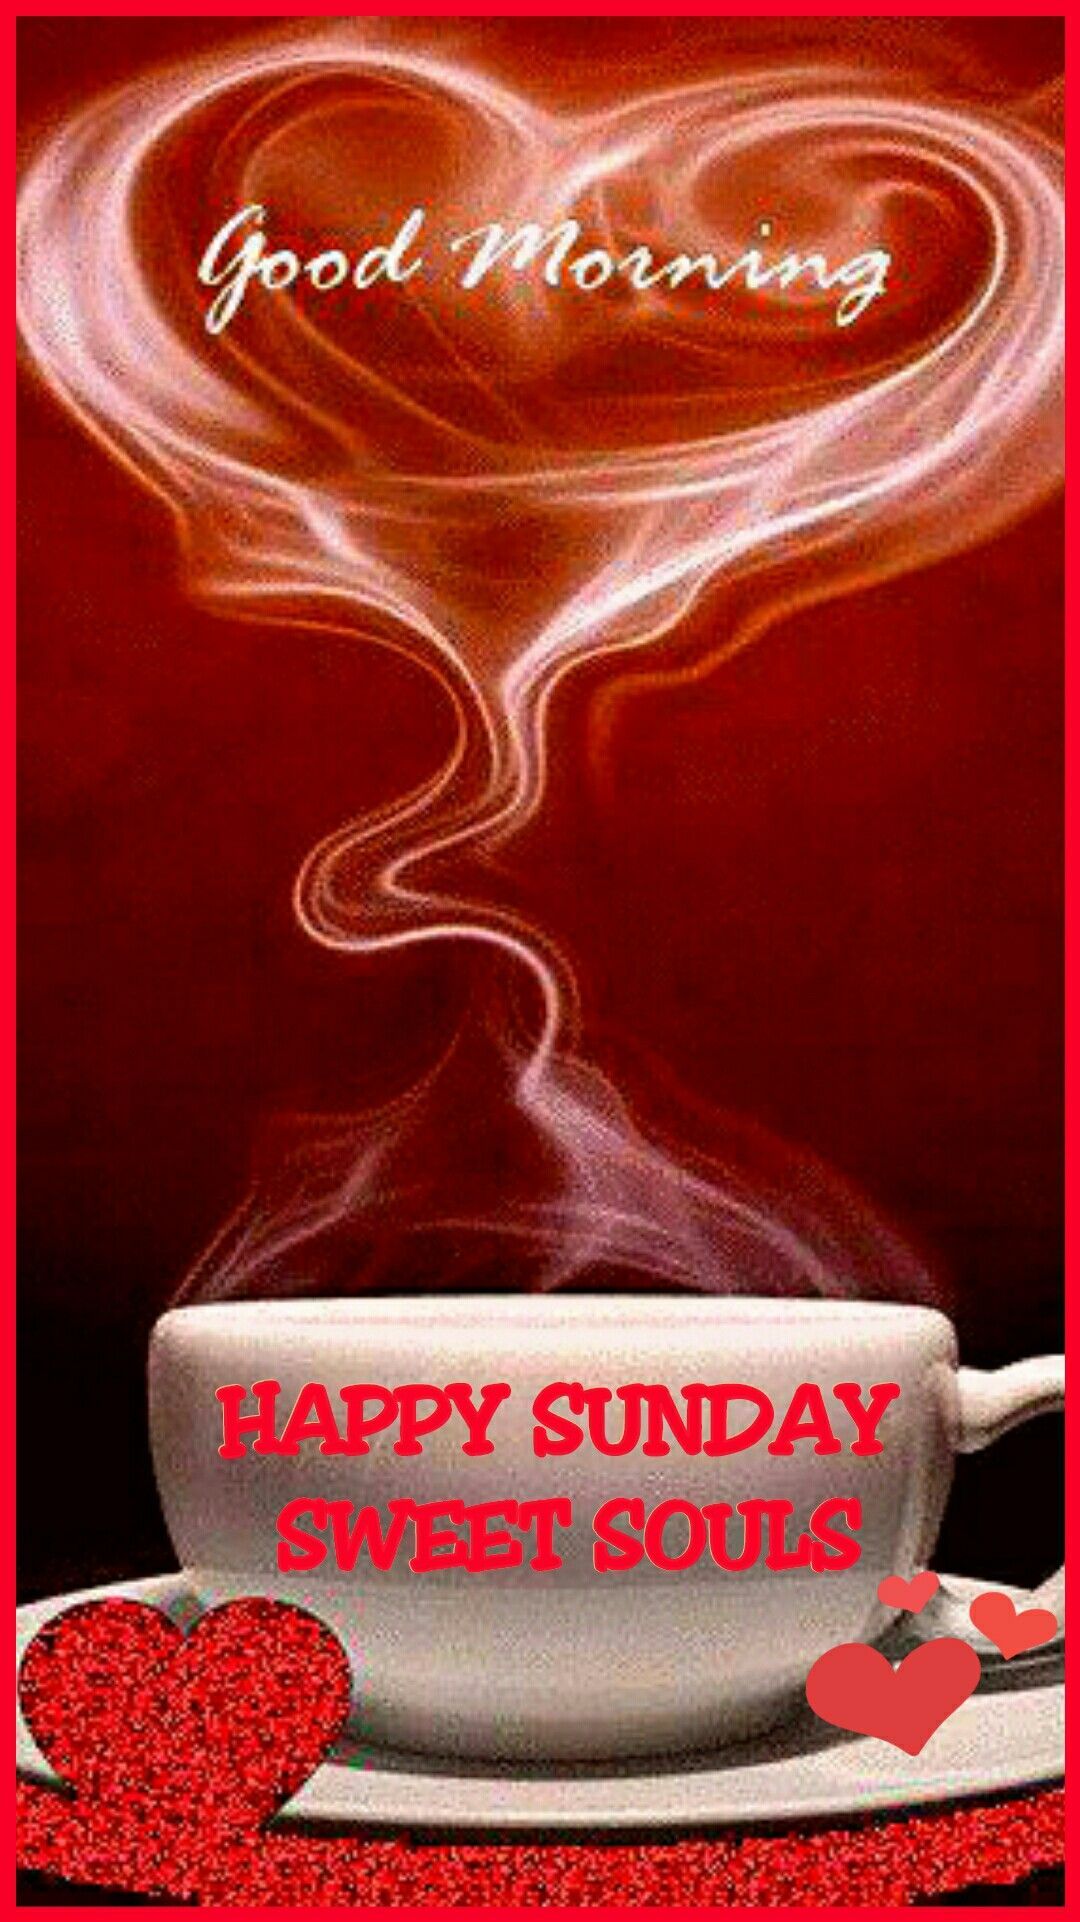 Good Morning Happy Sunday Sweet Souls With Images Good Morning Coffee Good Morning Morning Coffee